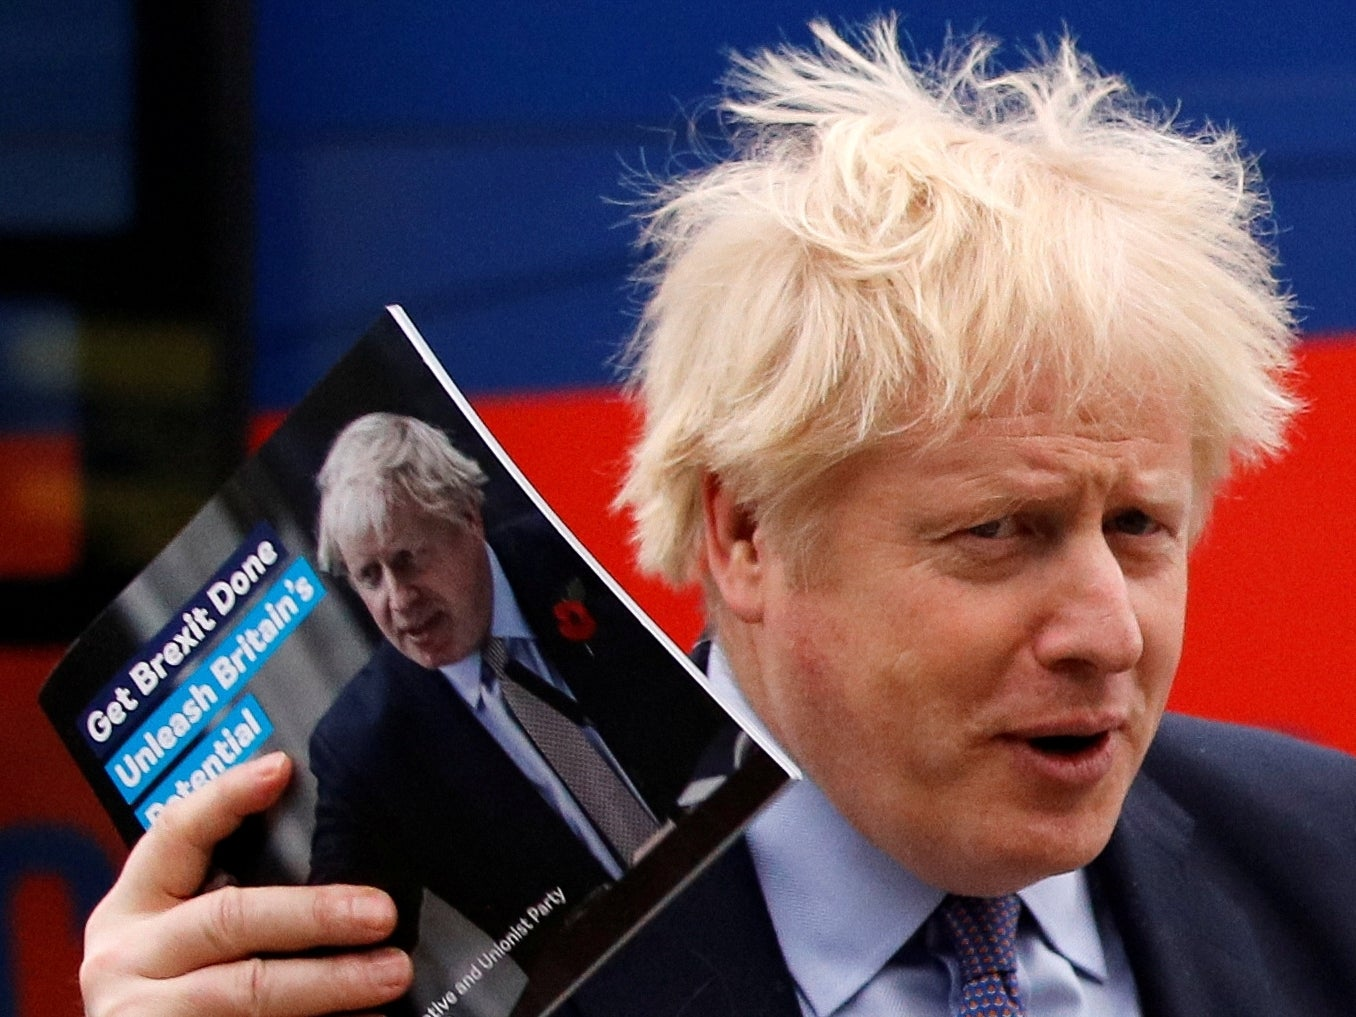 Boris Johnson is about to destroy our democracy – just because he wants to get back at me